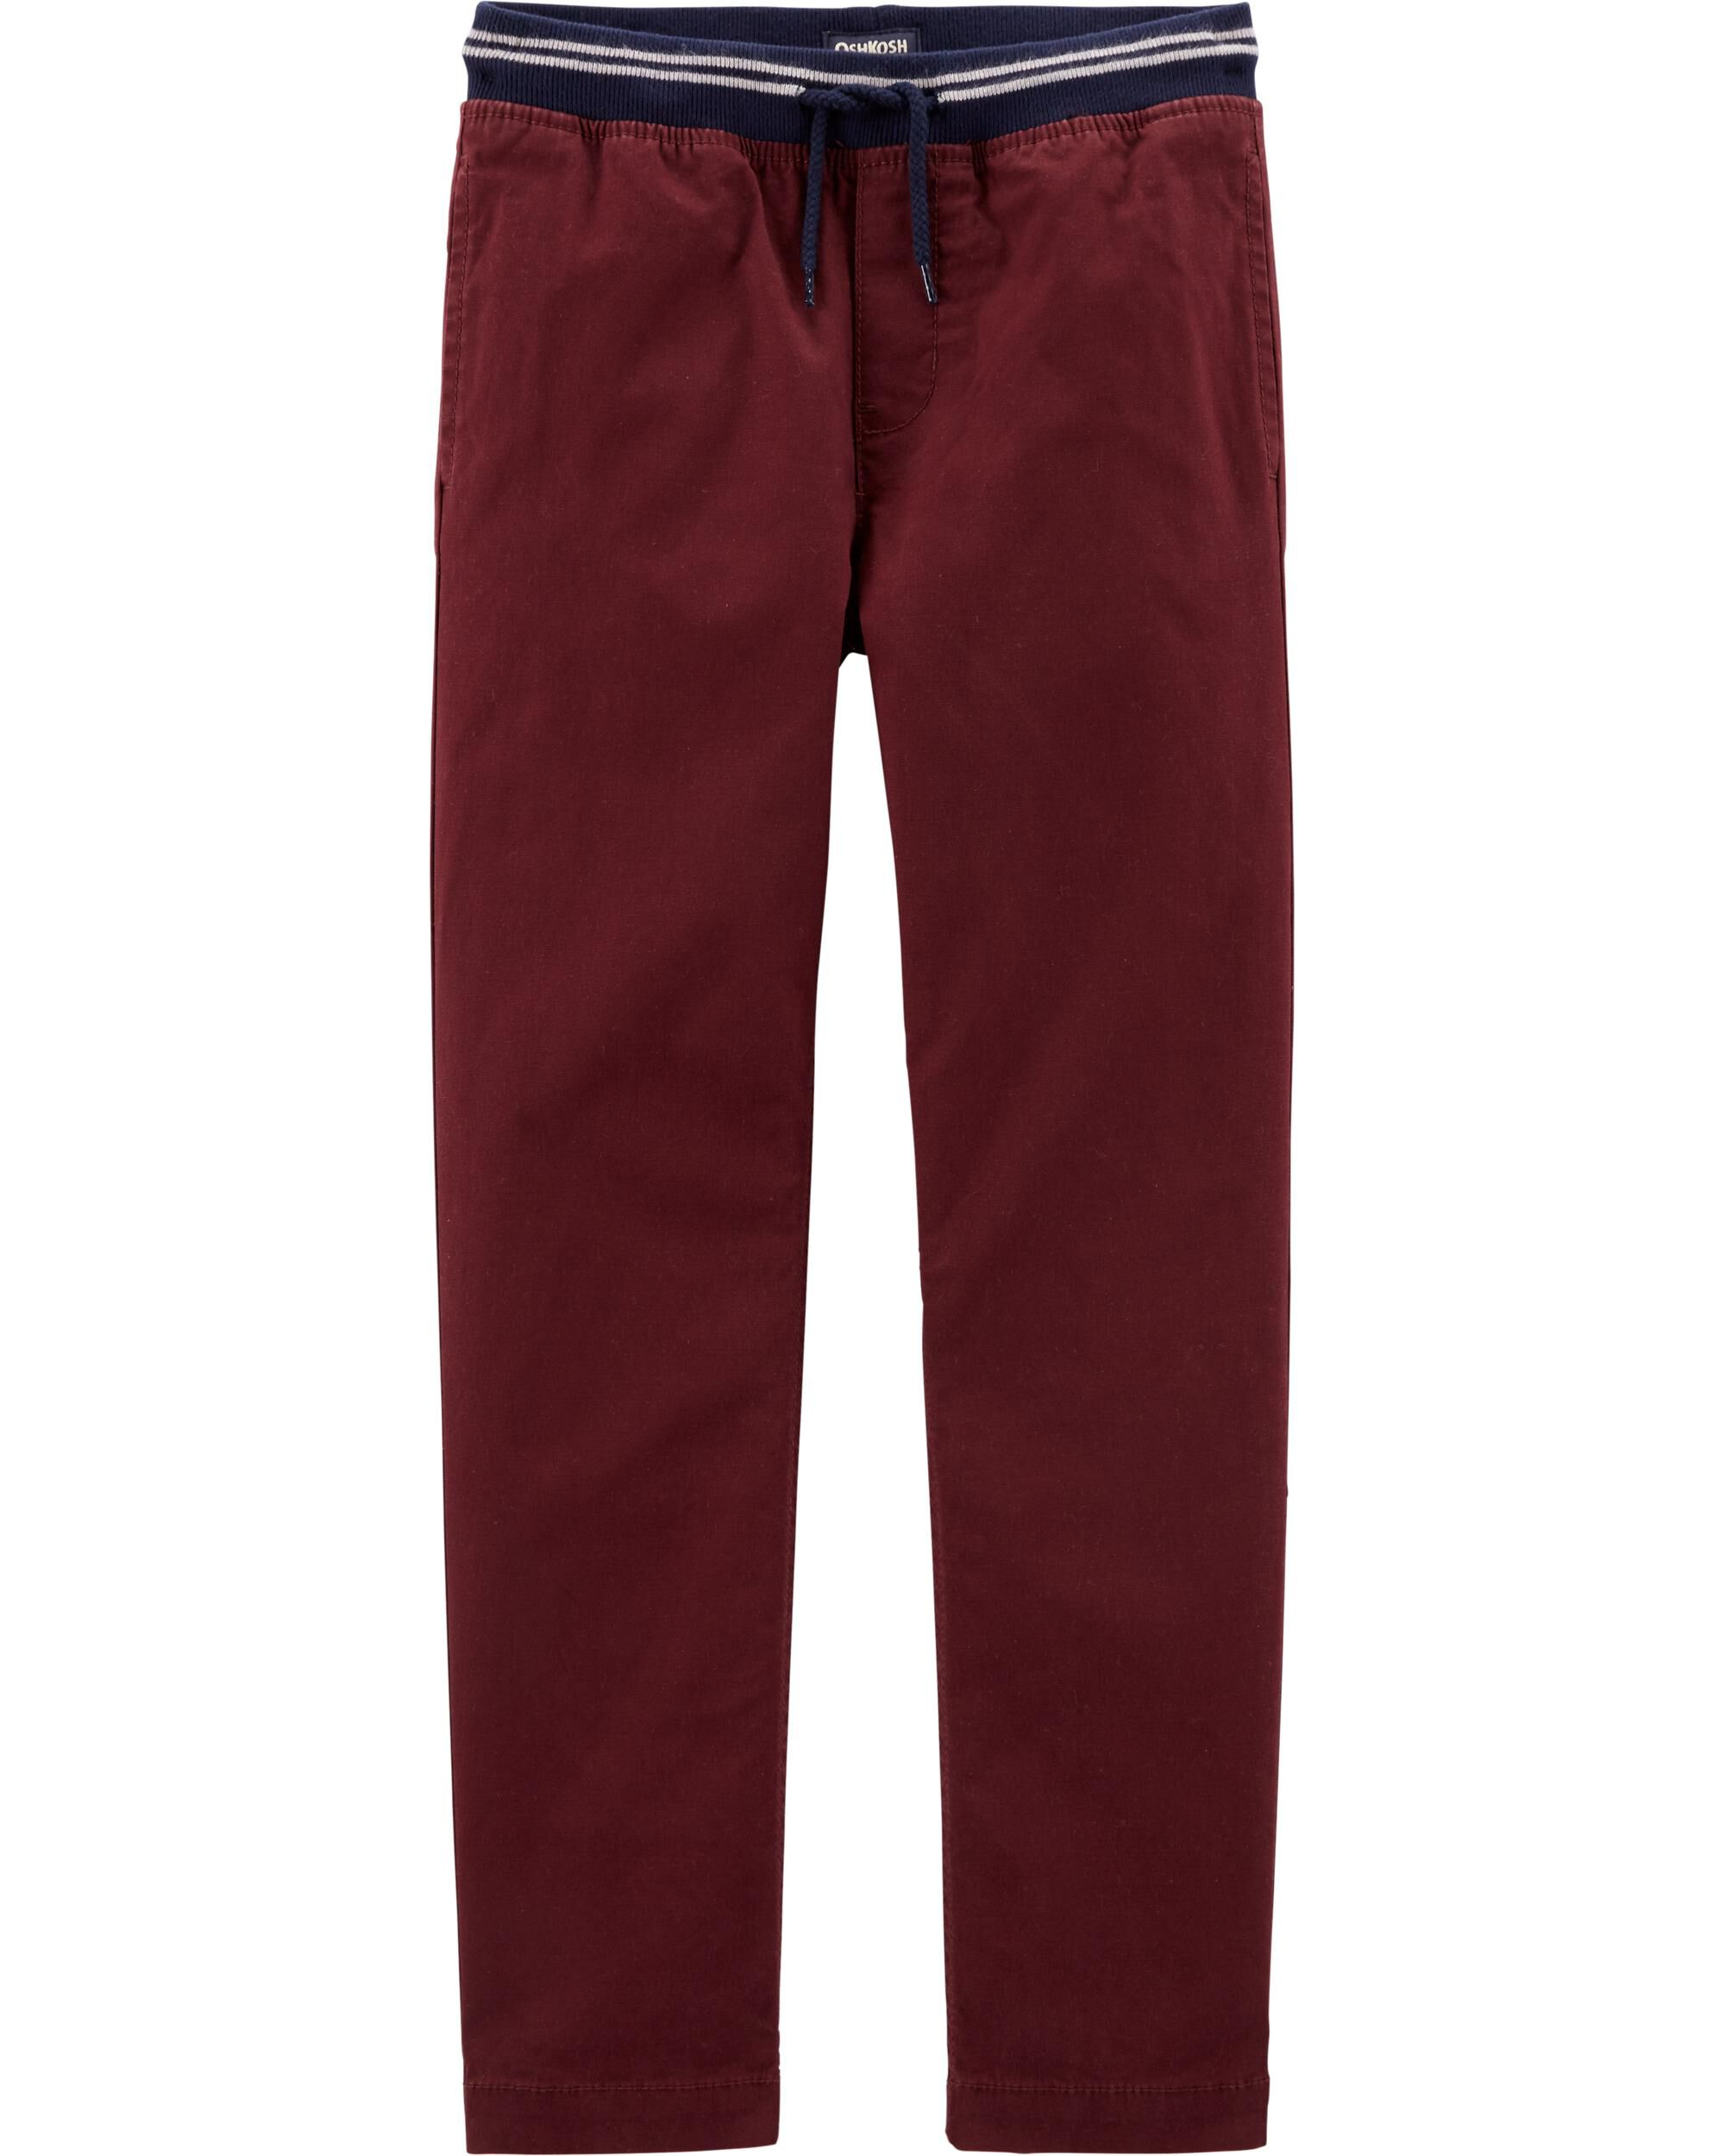 *CLEARANCE* Stretch Canvas Pants